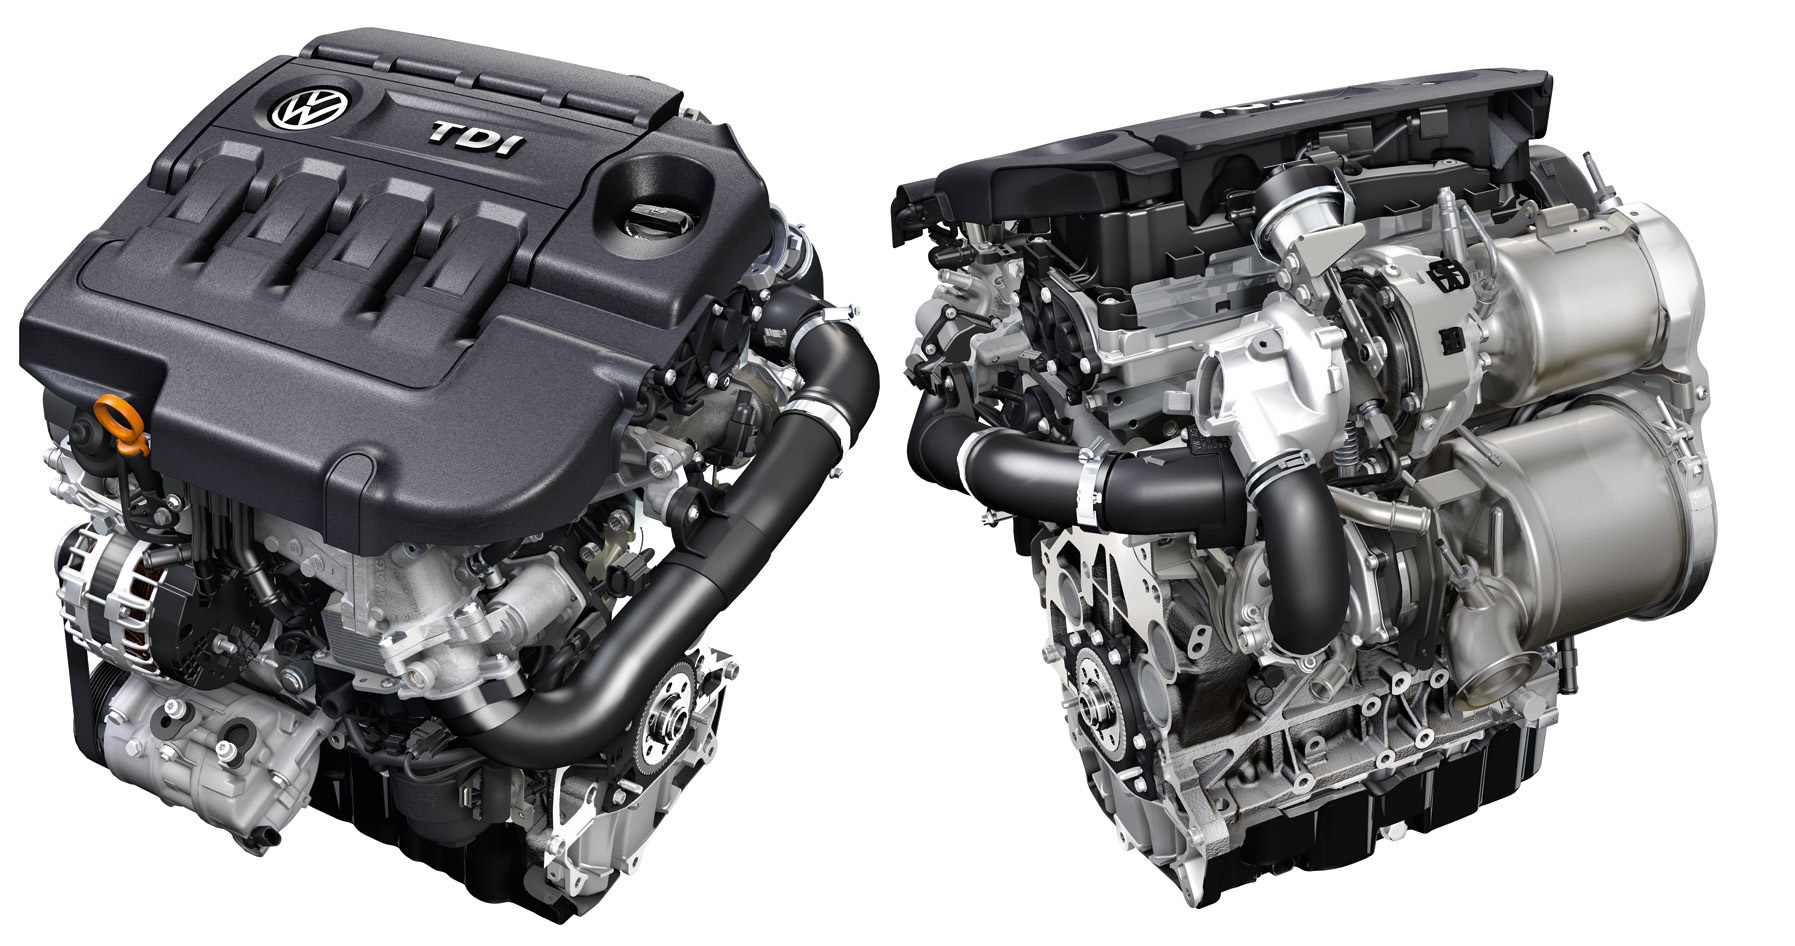 Ea288 Engines Designed For Eu5 And Eu6 Don T Have Defeat